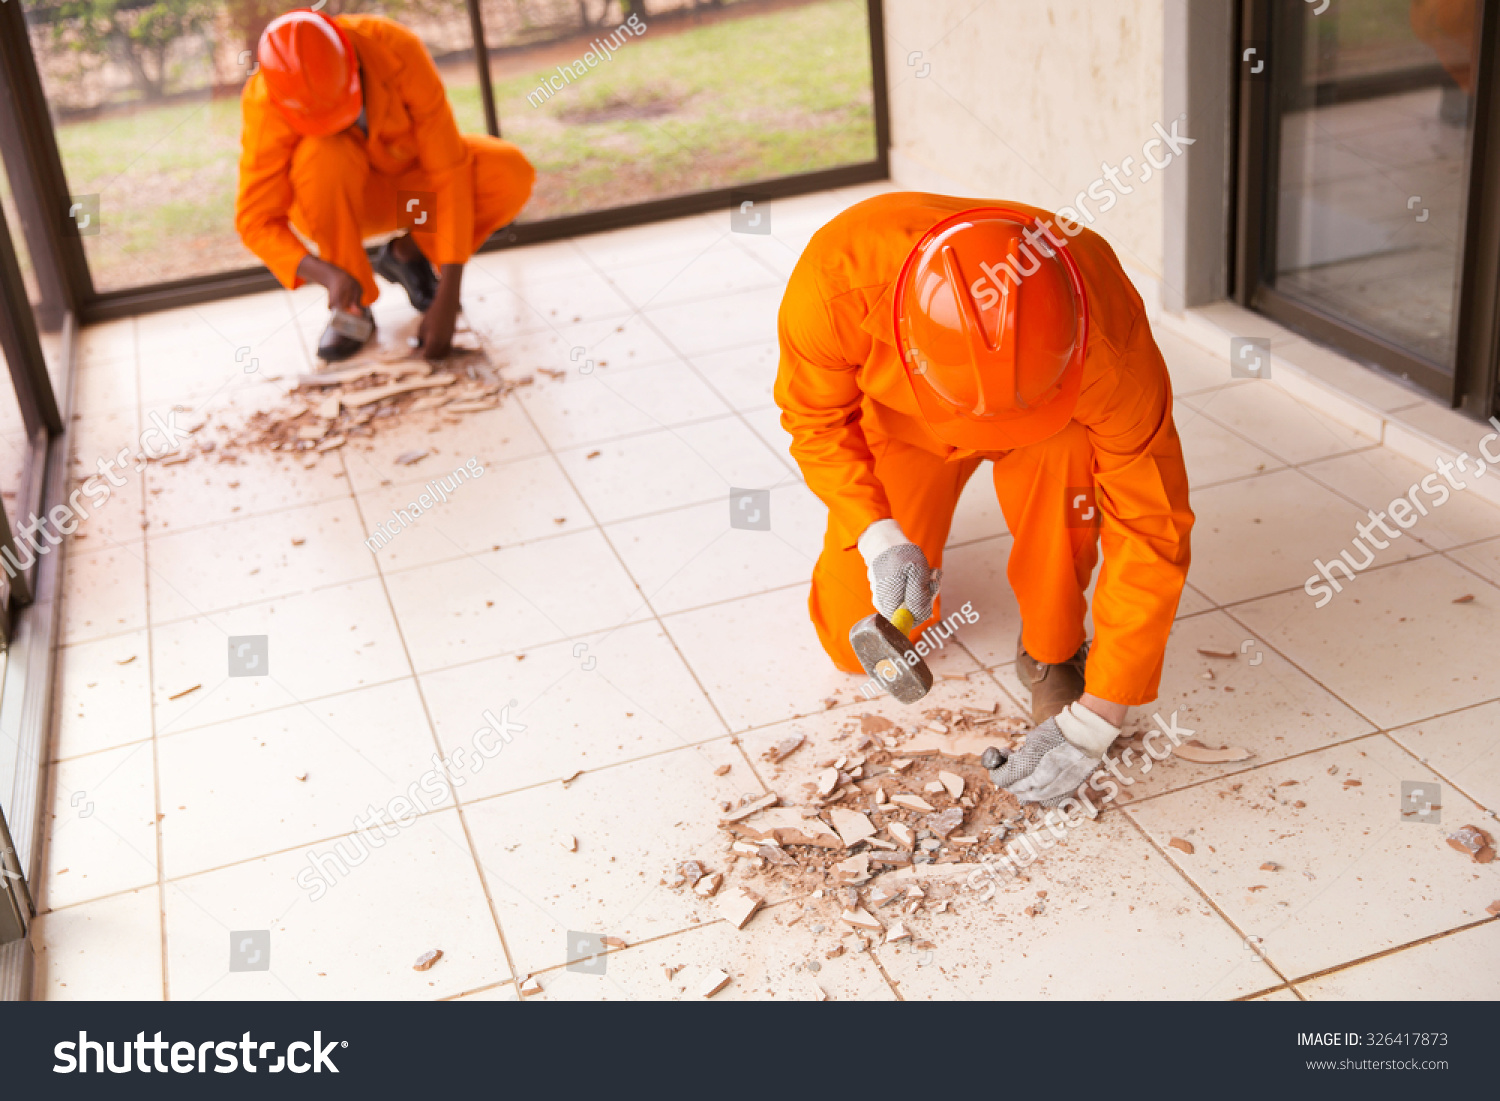 Contractors removing old floor tiles using stock photo 326417873 contractors removing old floor tiles using hammer and chisel dailygadgetfo Image collections